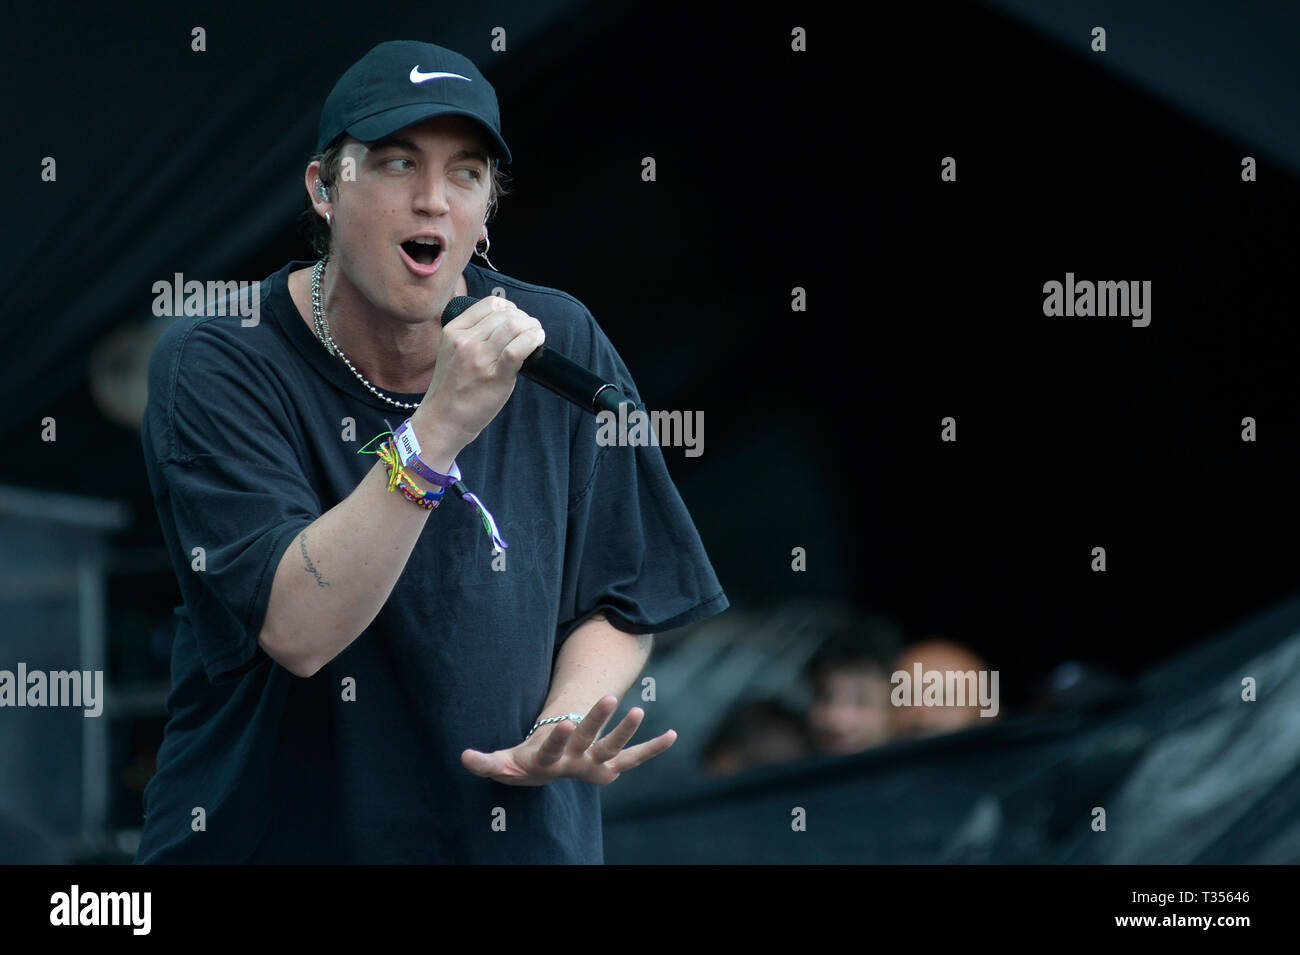 Sao Paulo, Brazil. 06th Apr, 2019. Lany performs at the Lollapalooza 2019 festival, held at the Autodromo de Interlagos in São Paulo on Saturday, 06. (PHOTO: LEVI BIANCO/BRAZIL PHOTO PRESS) Credit: Brazil Photo Press/Alamy Live News - Stock Image